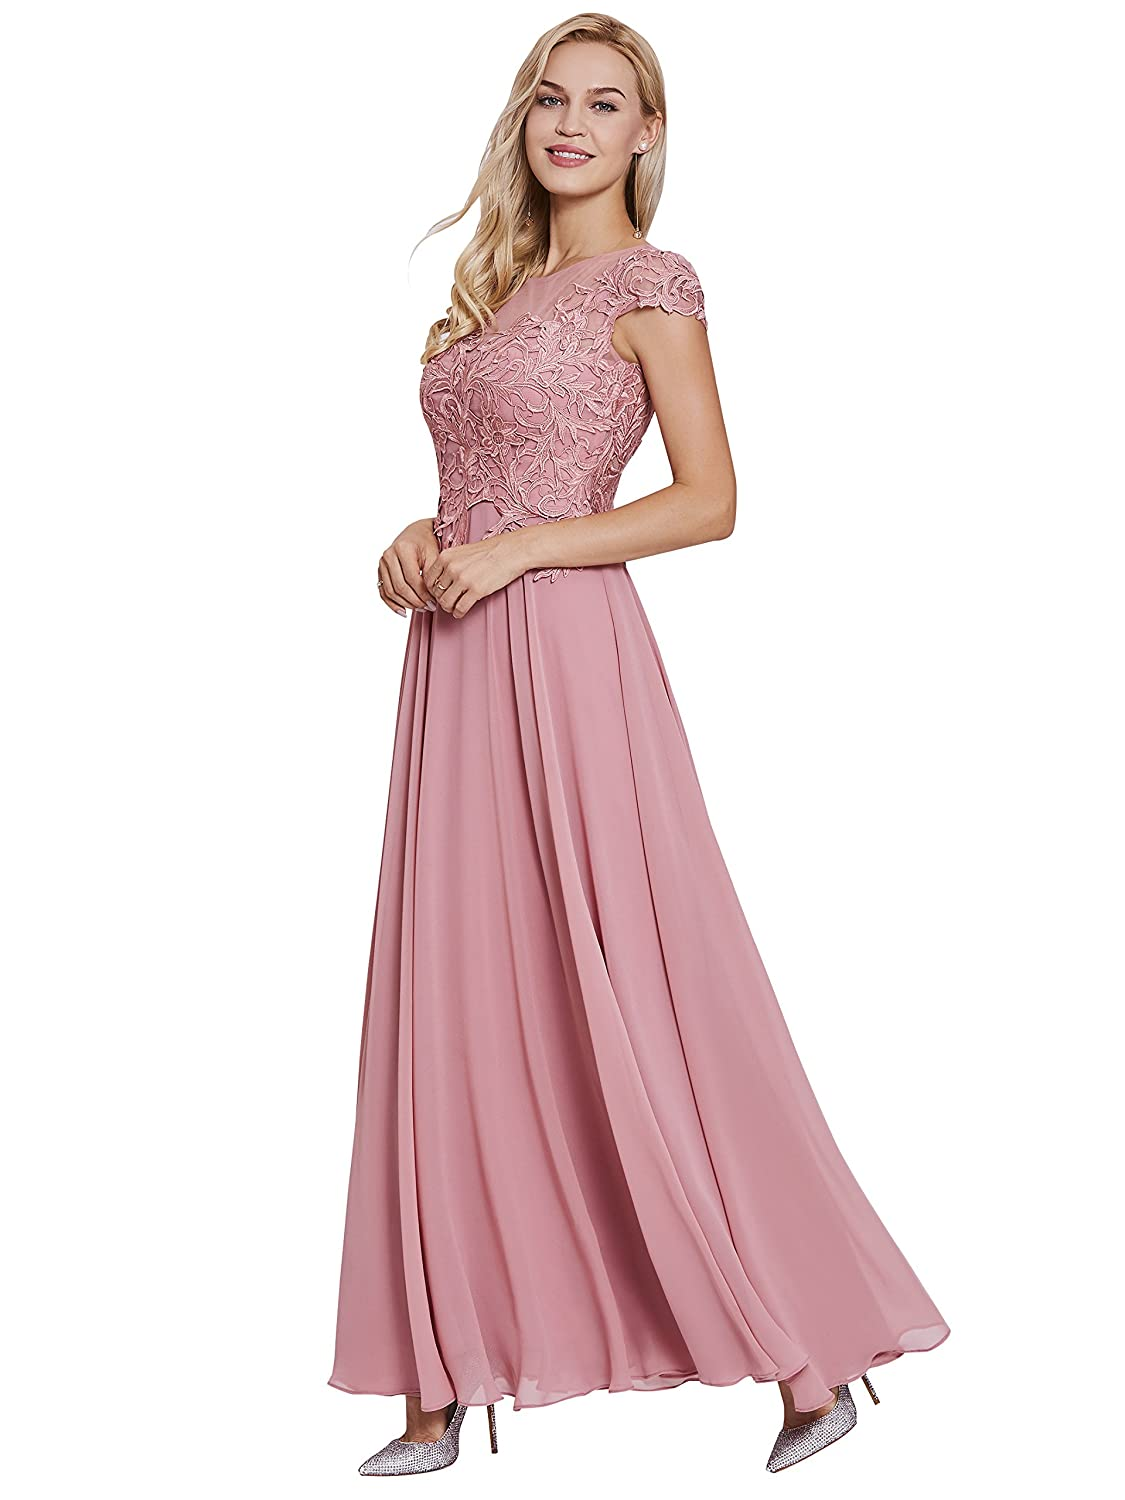 20864e46c8 Neckline:Scoop Neck Hemline/Train:Floor-Length Silhouette:A-line. Sleeve  Length:Cap Sleeve Back Style:Zipper-Up Fabric:Chiffon Embellishment: Appliques